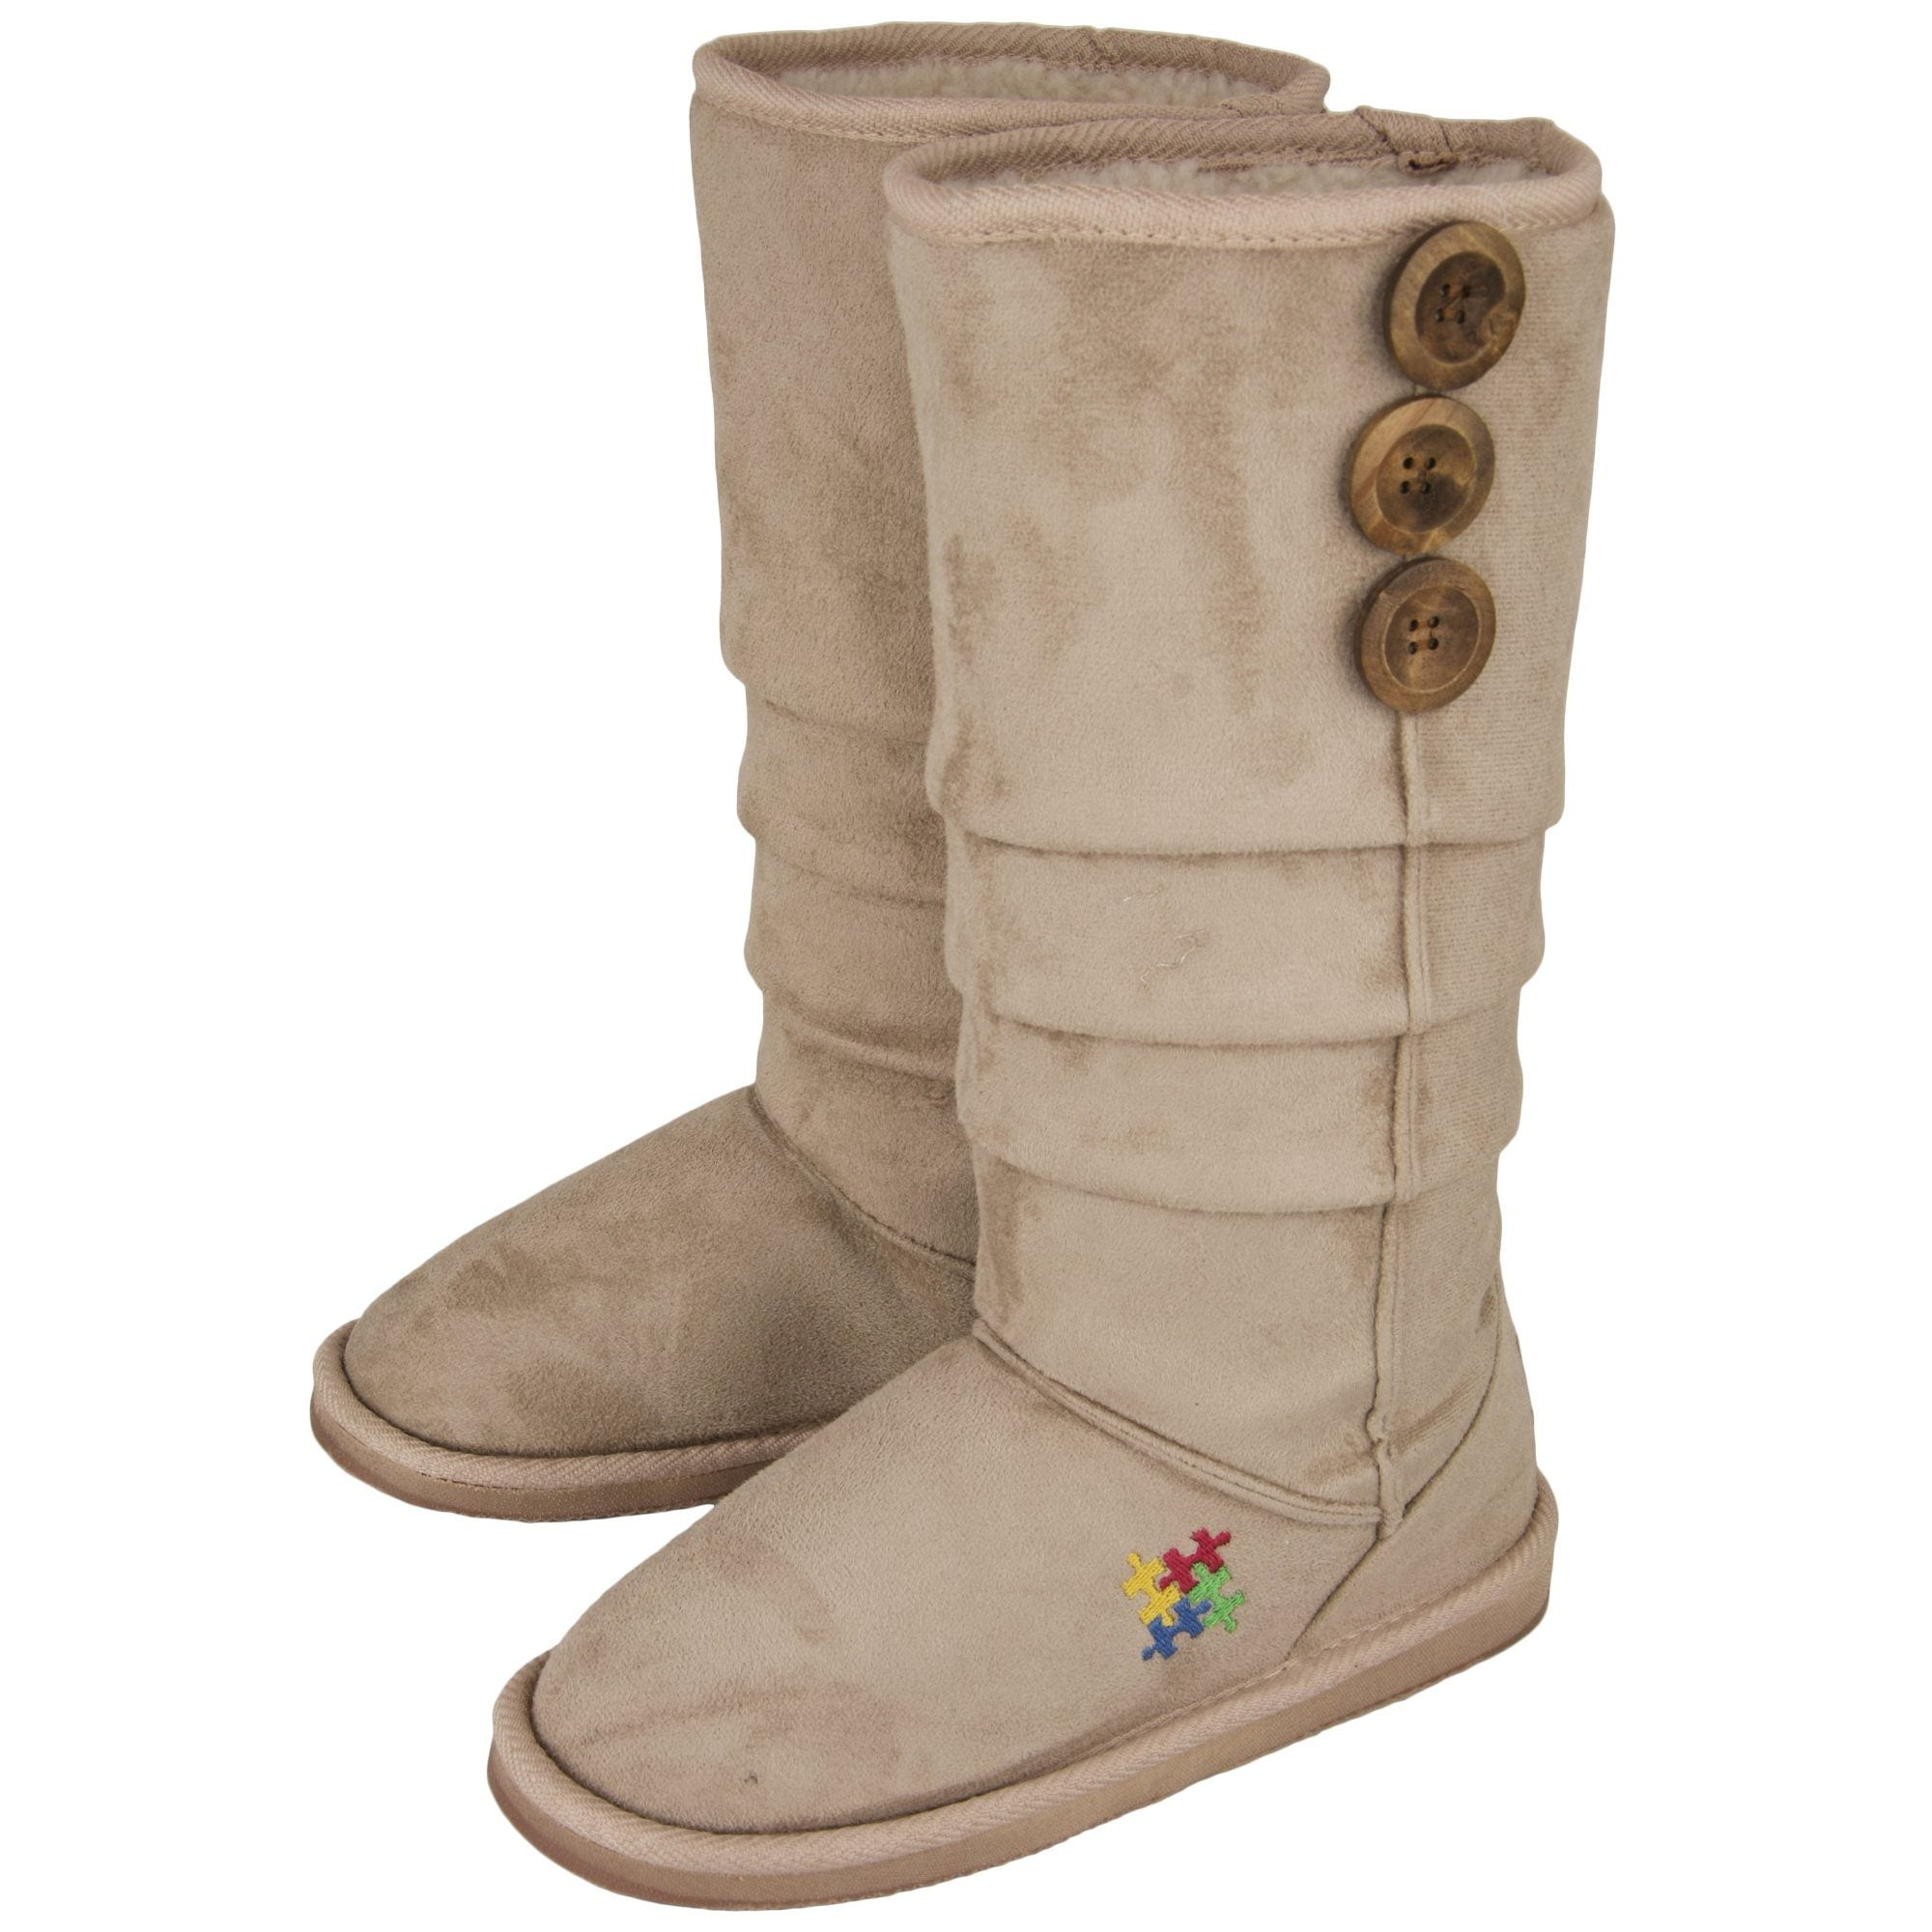 887ab93503e Autism Awareness Slouch Boots| The Autism Site